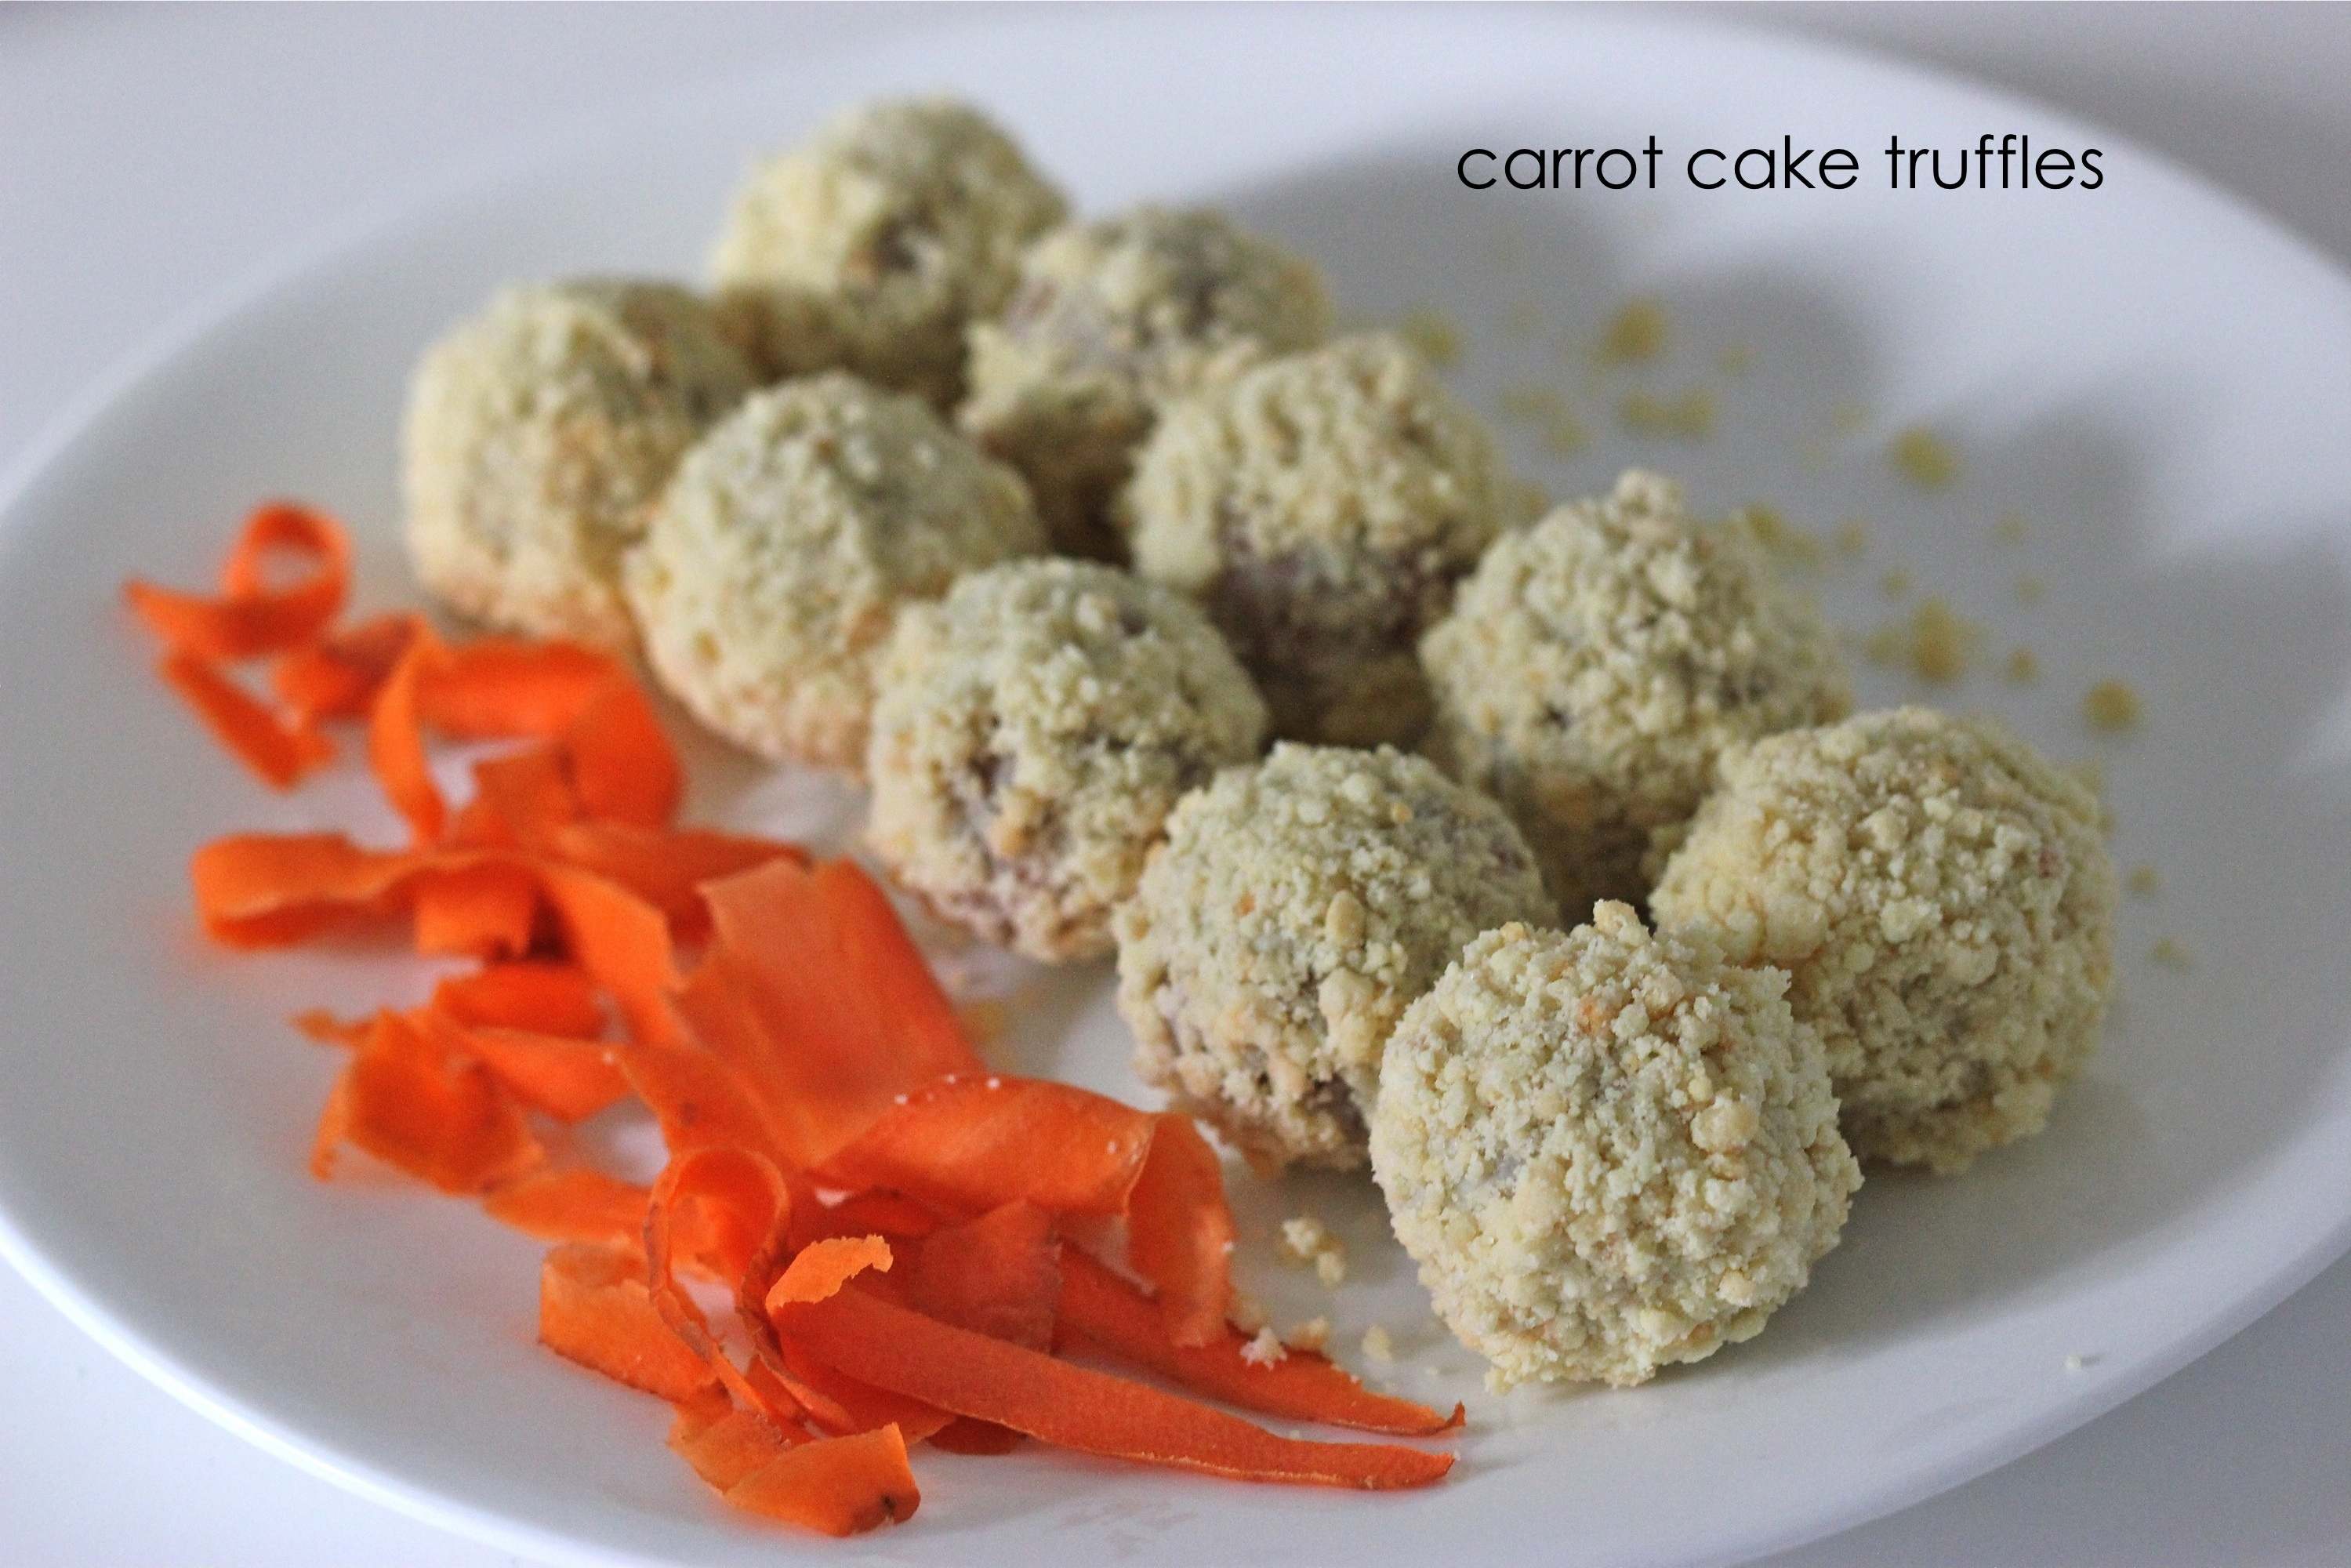 ... milk bar exam no. 10 {carrot cake truffles} | margaret in the city